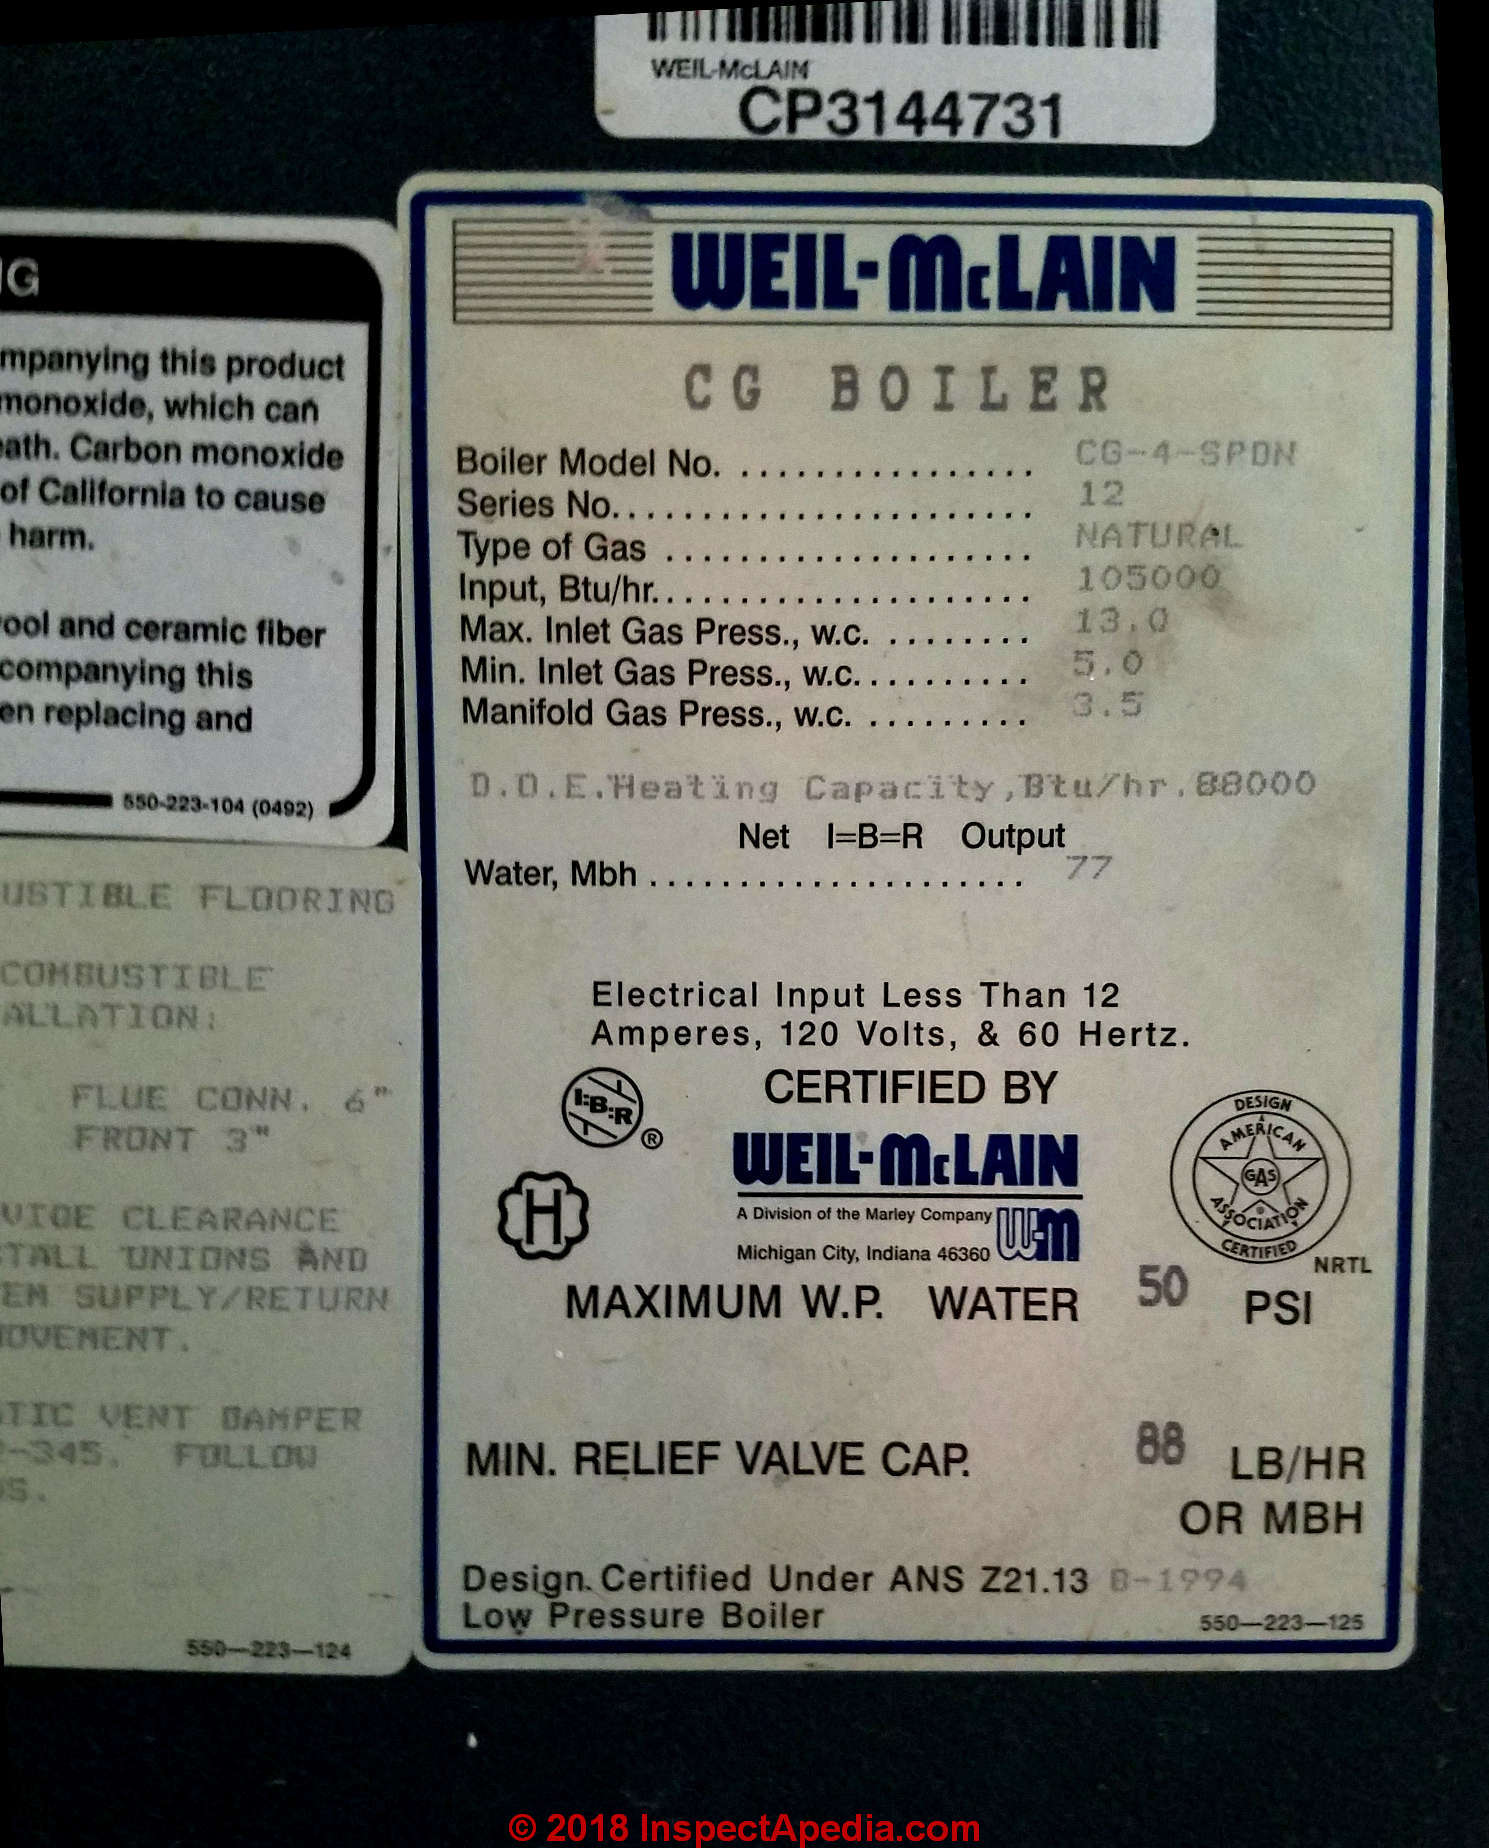 Installation And Service Manuals For Heating Heat Pump Air Tempstar Ac Unit Wiring Diagram Free Download Data Tag From A Weil Mclain Gas Boiler In Two Harbors Mn C Daniel